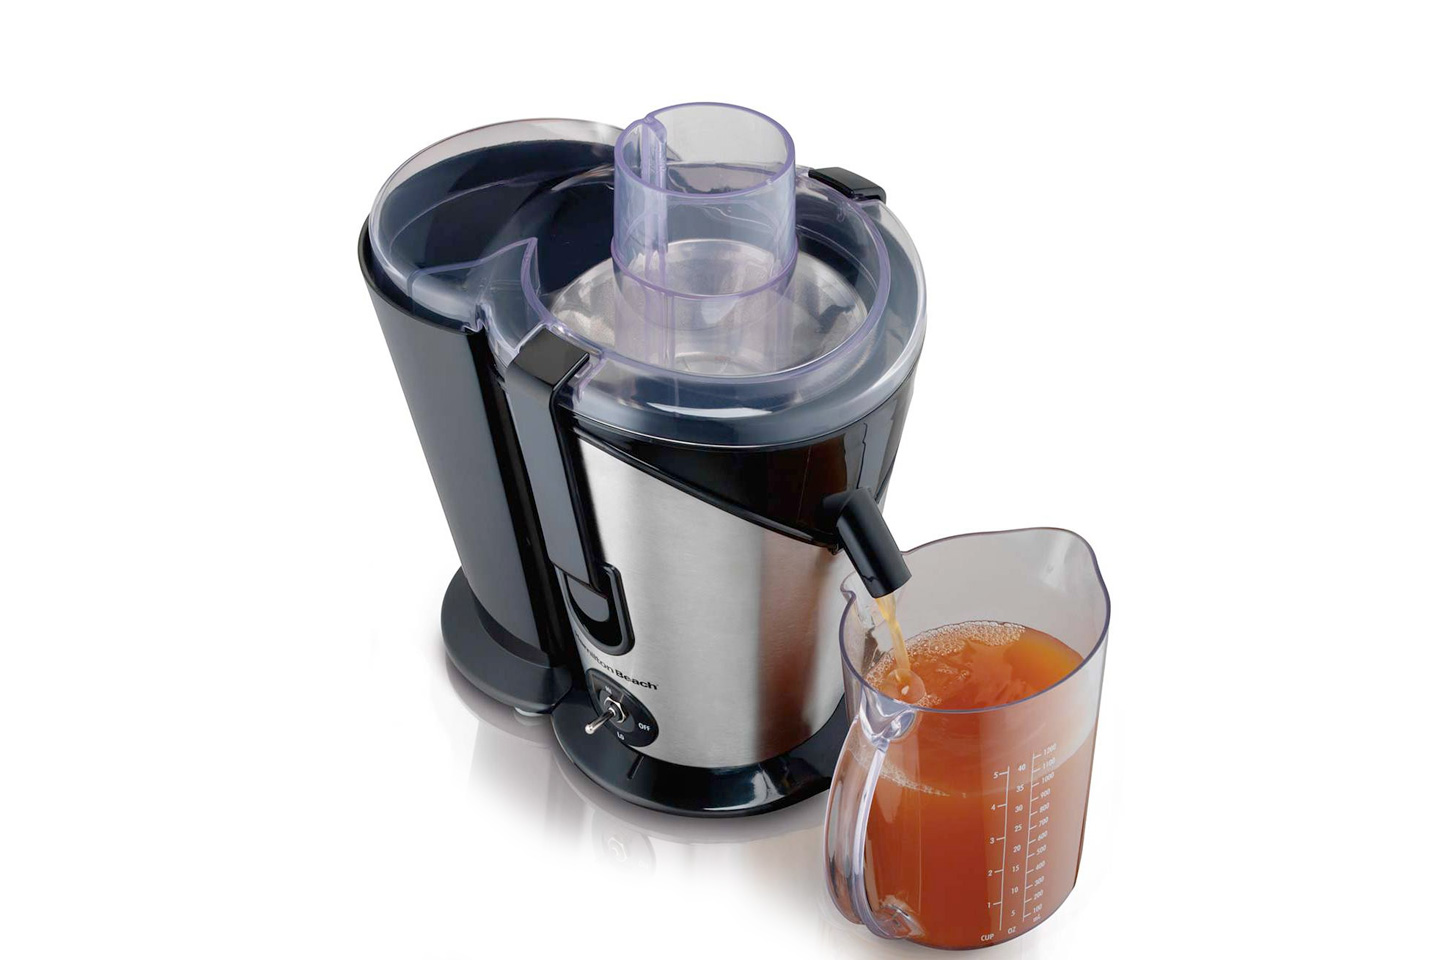 Hamilton Beach Big Mouth Plus 67750 Juice Extractor  Review | HeartyBlends.co